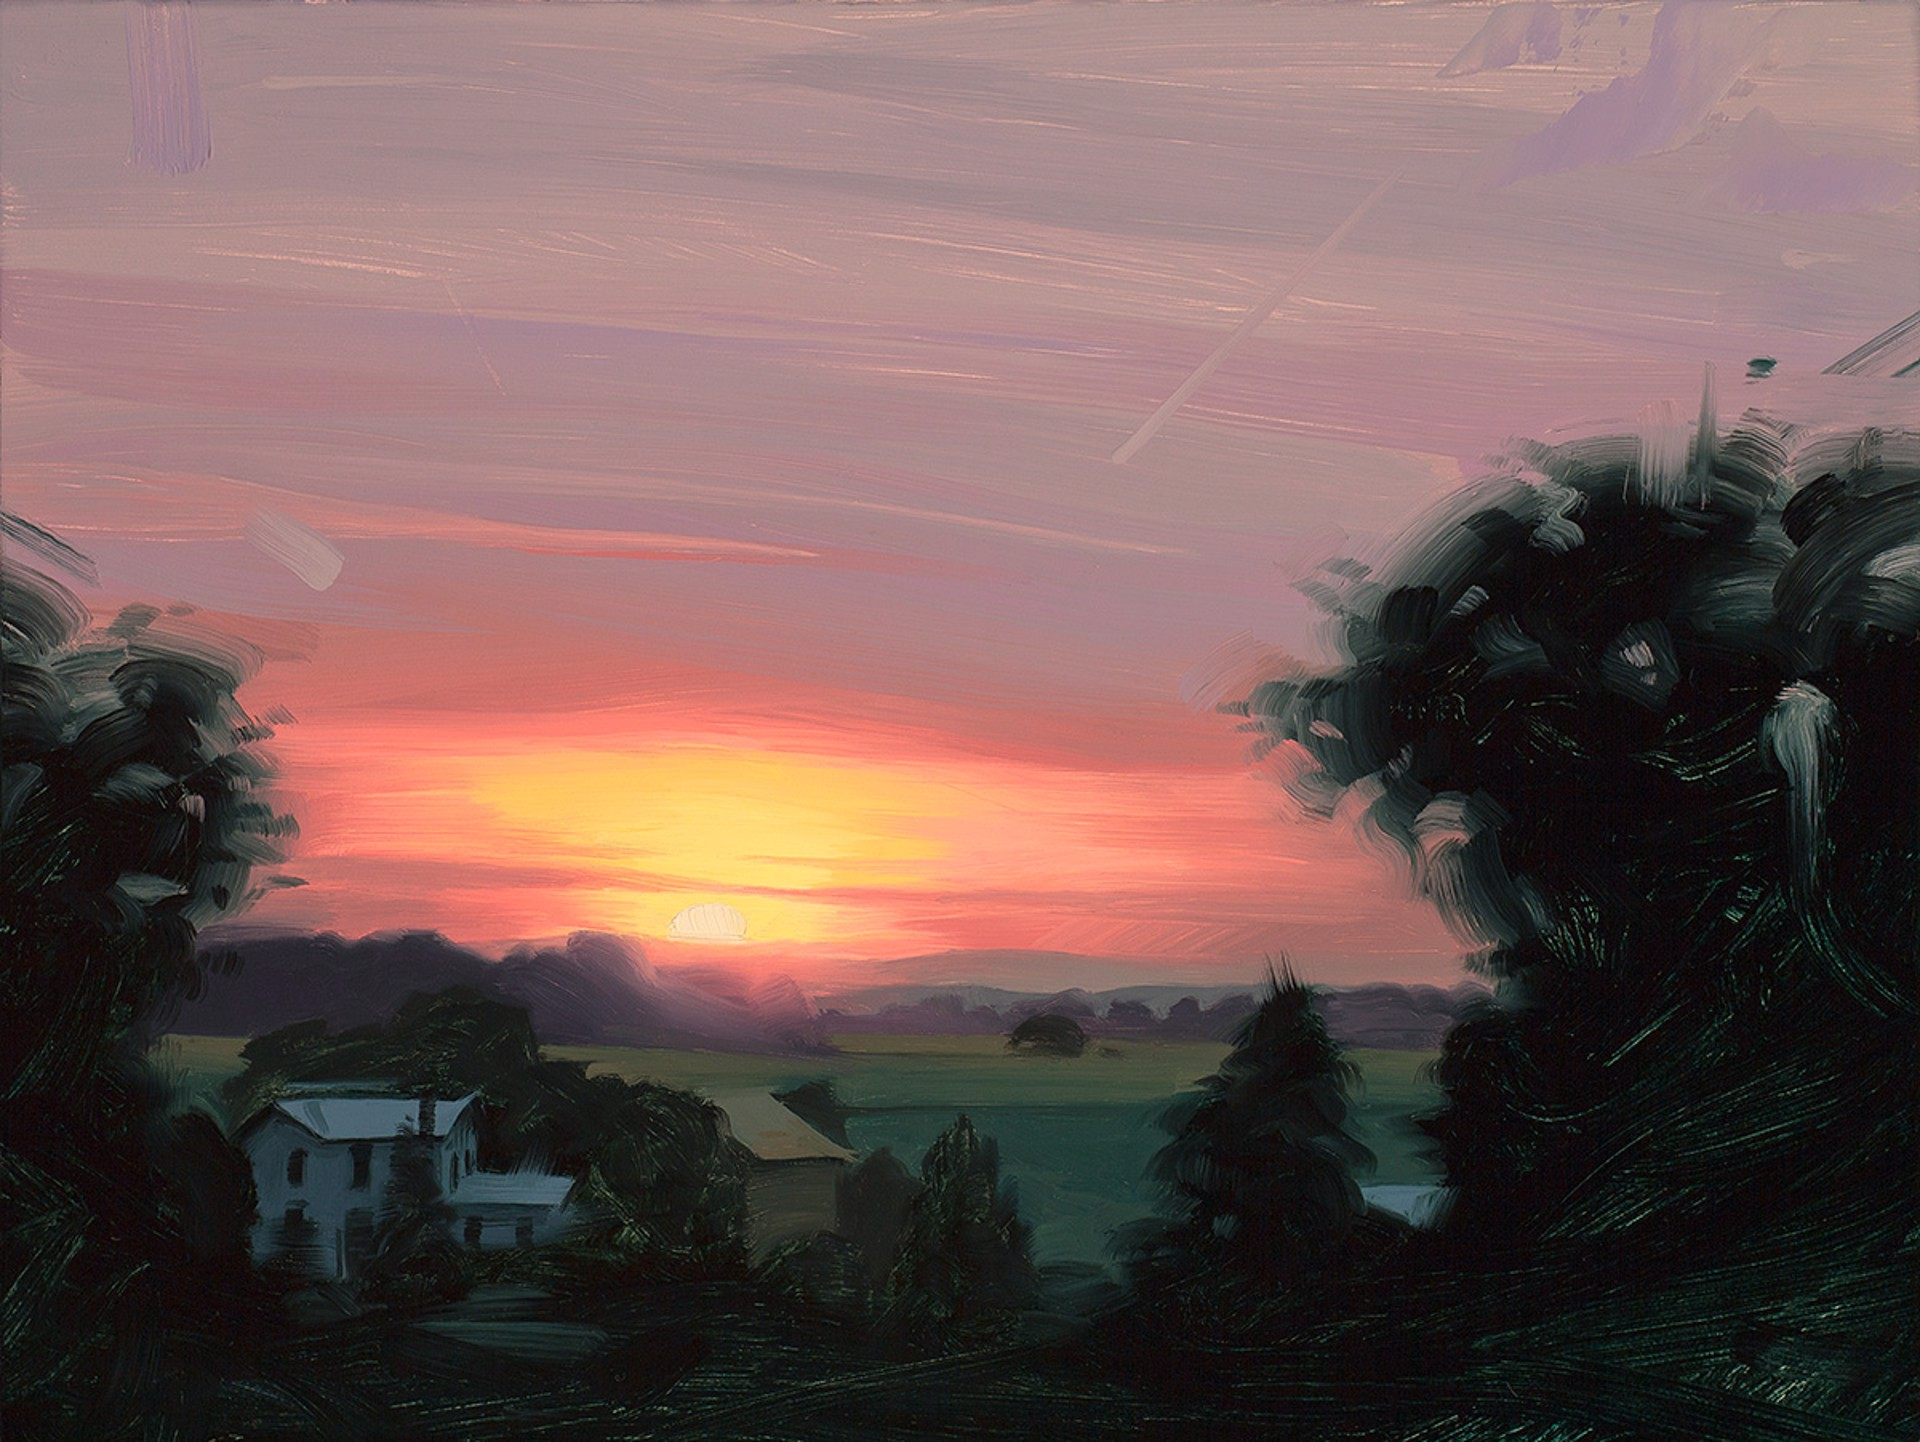 Sunset Over the Farm by Rob Rey